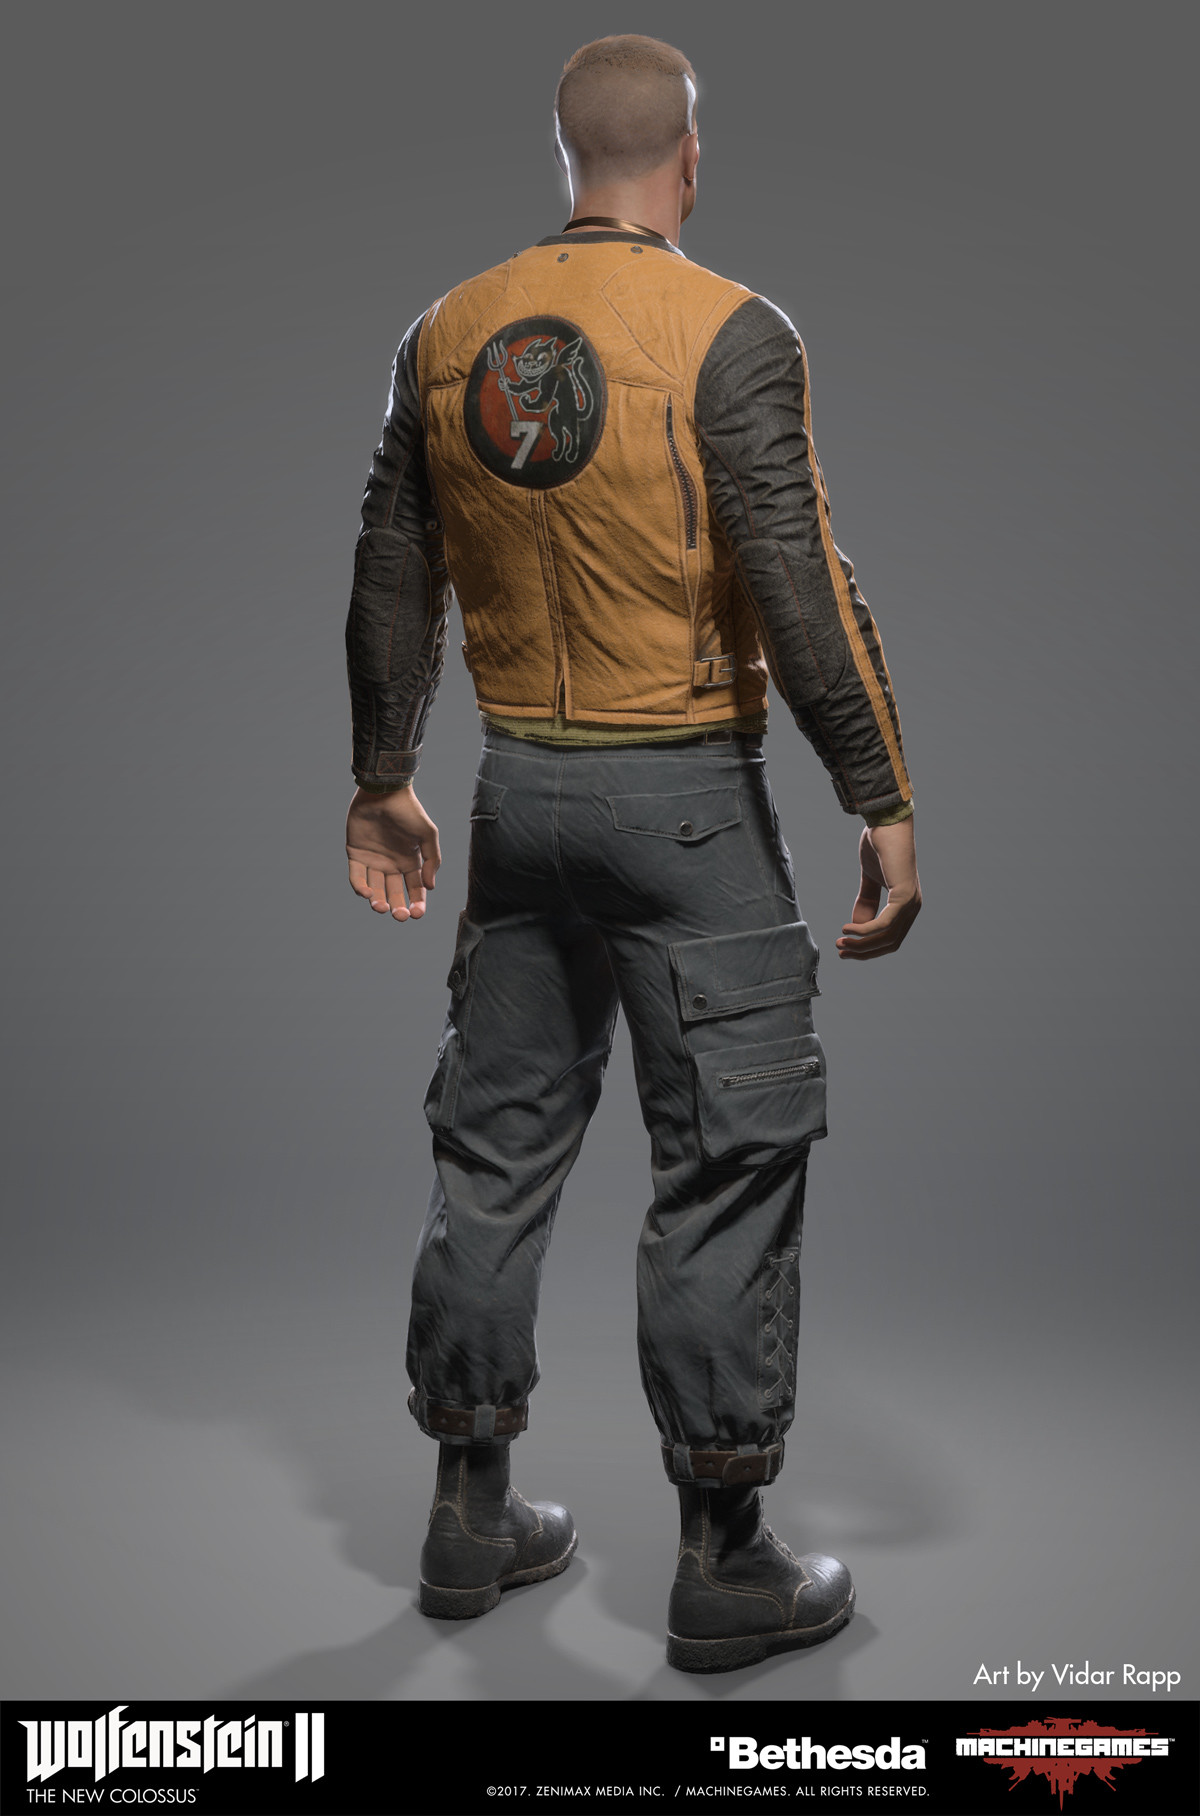 Vidar rapp blazkowicz new jacket back